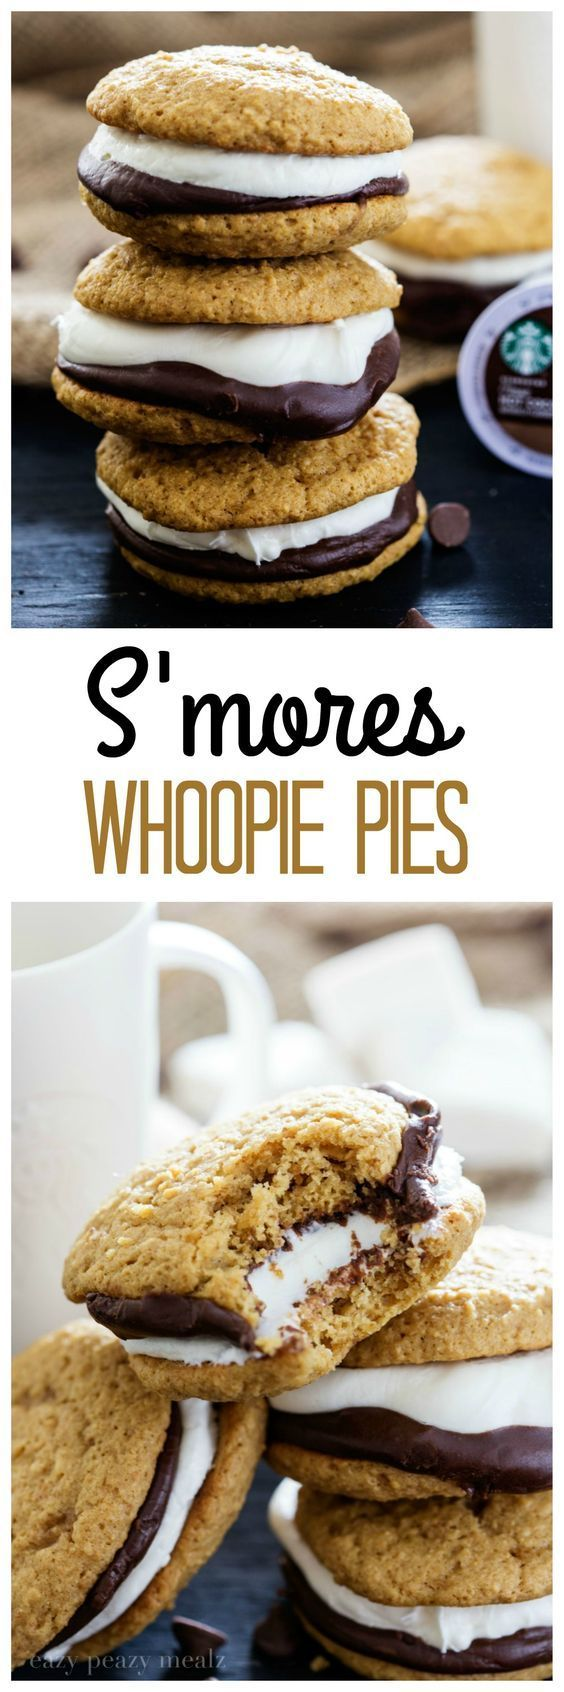 S'mores Whoopie Pies   9 Insanely Delicious S'mores Dessert Recipes   http://www.hercampus.com/health/food/9-insanely-delicious-smores-dessert-recipes